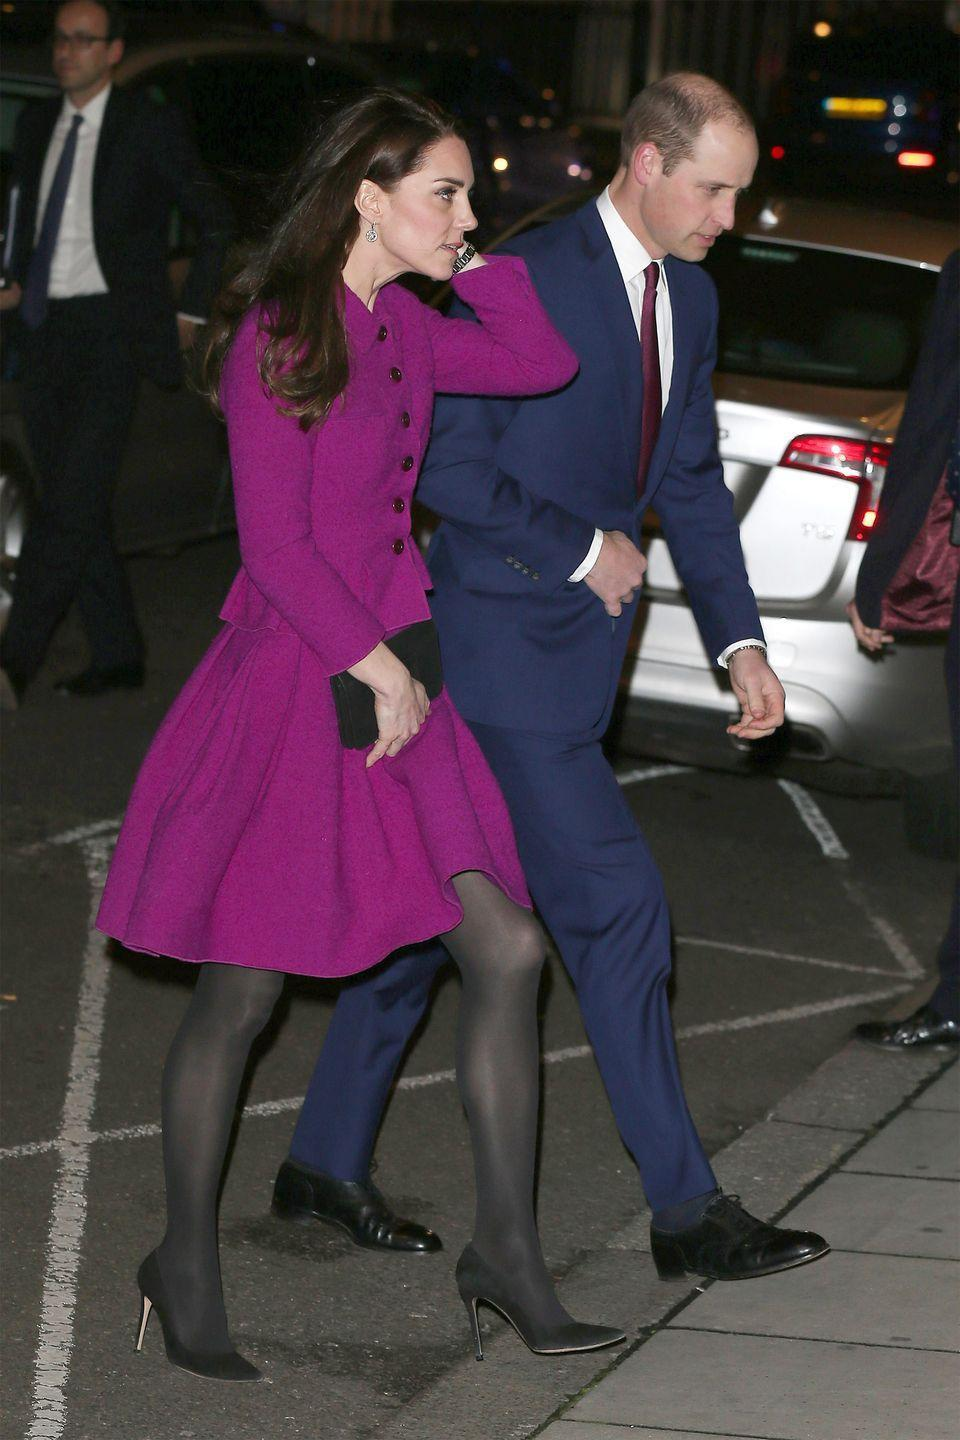 <p>The Duchess of Cambridge wears an Oscar de la Renta purple skirt suit, black tights, black pumps and a clutch while attending the Guild of Health Writers Conference with Prince William.</p>